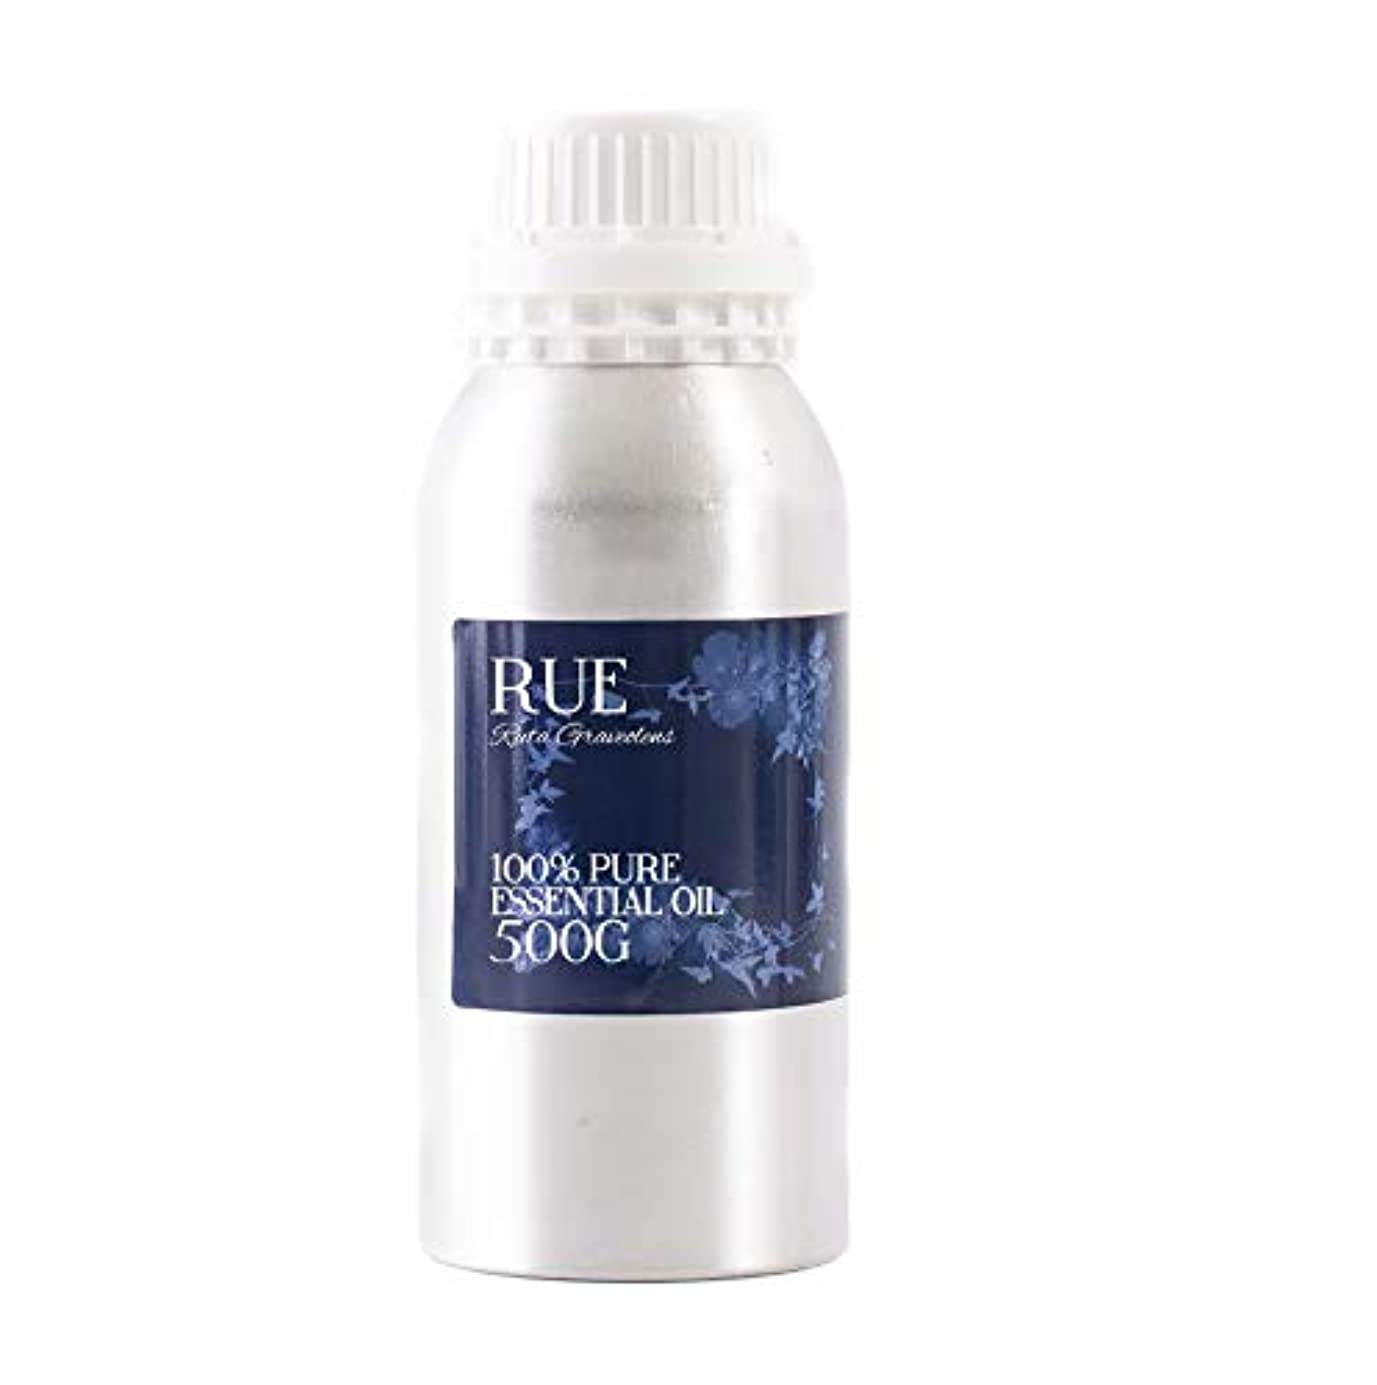 取るハイジャック敬意Mystic Moments | Rue Essential Oil - 500g - 100% Pure